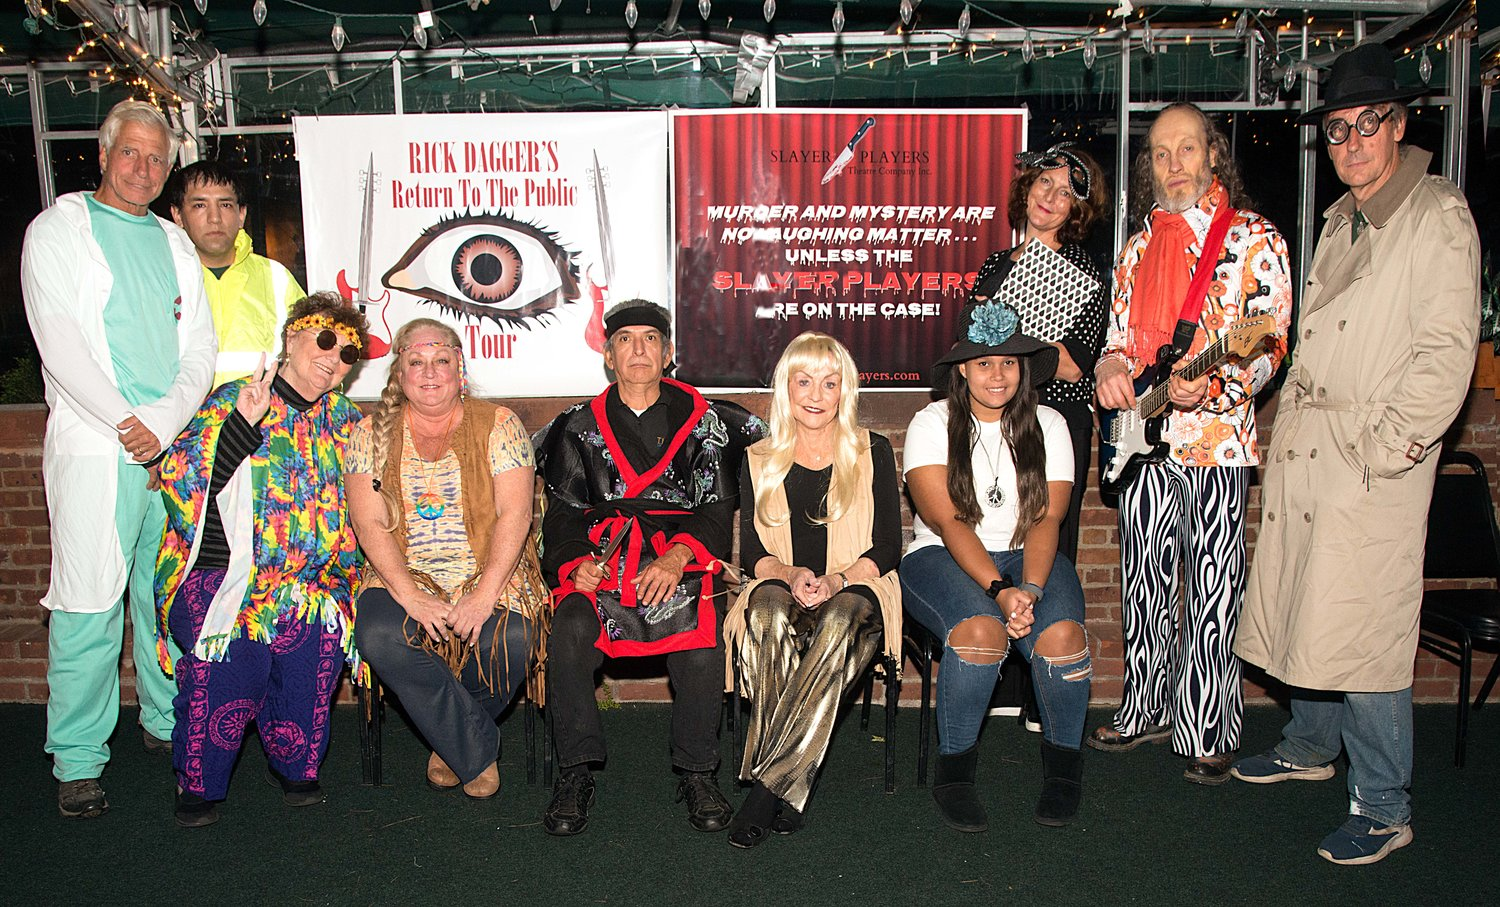 The 16-person cast of characters, 10 who are pictured here, are eager to premiere the Slayer Players' Halloween-themed murder mystery.